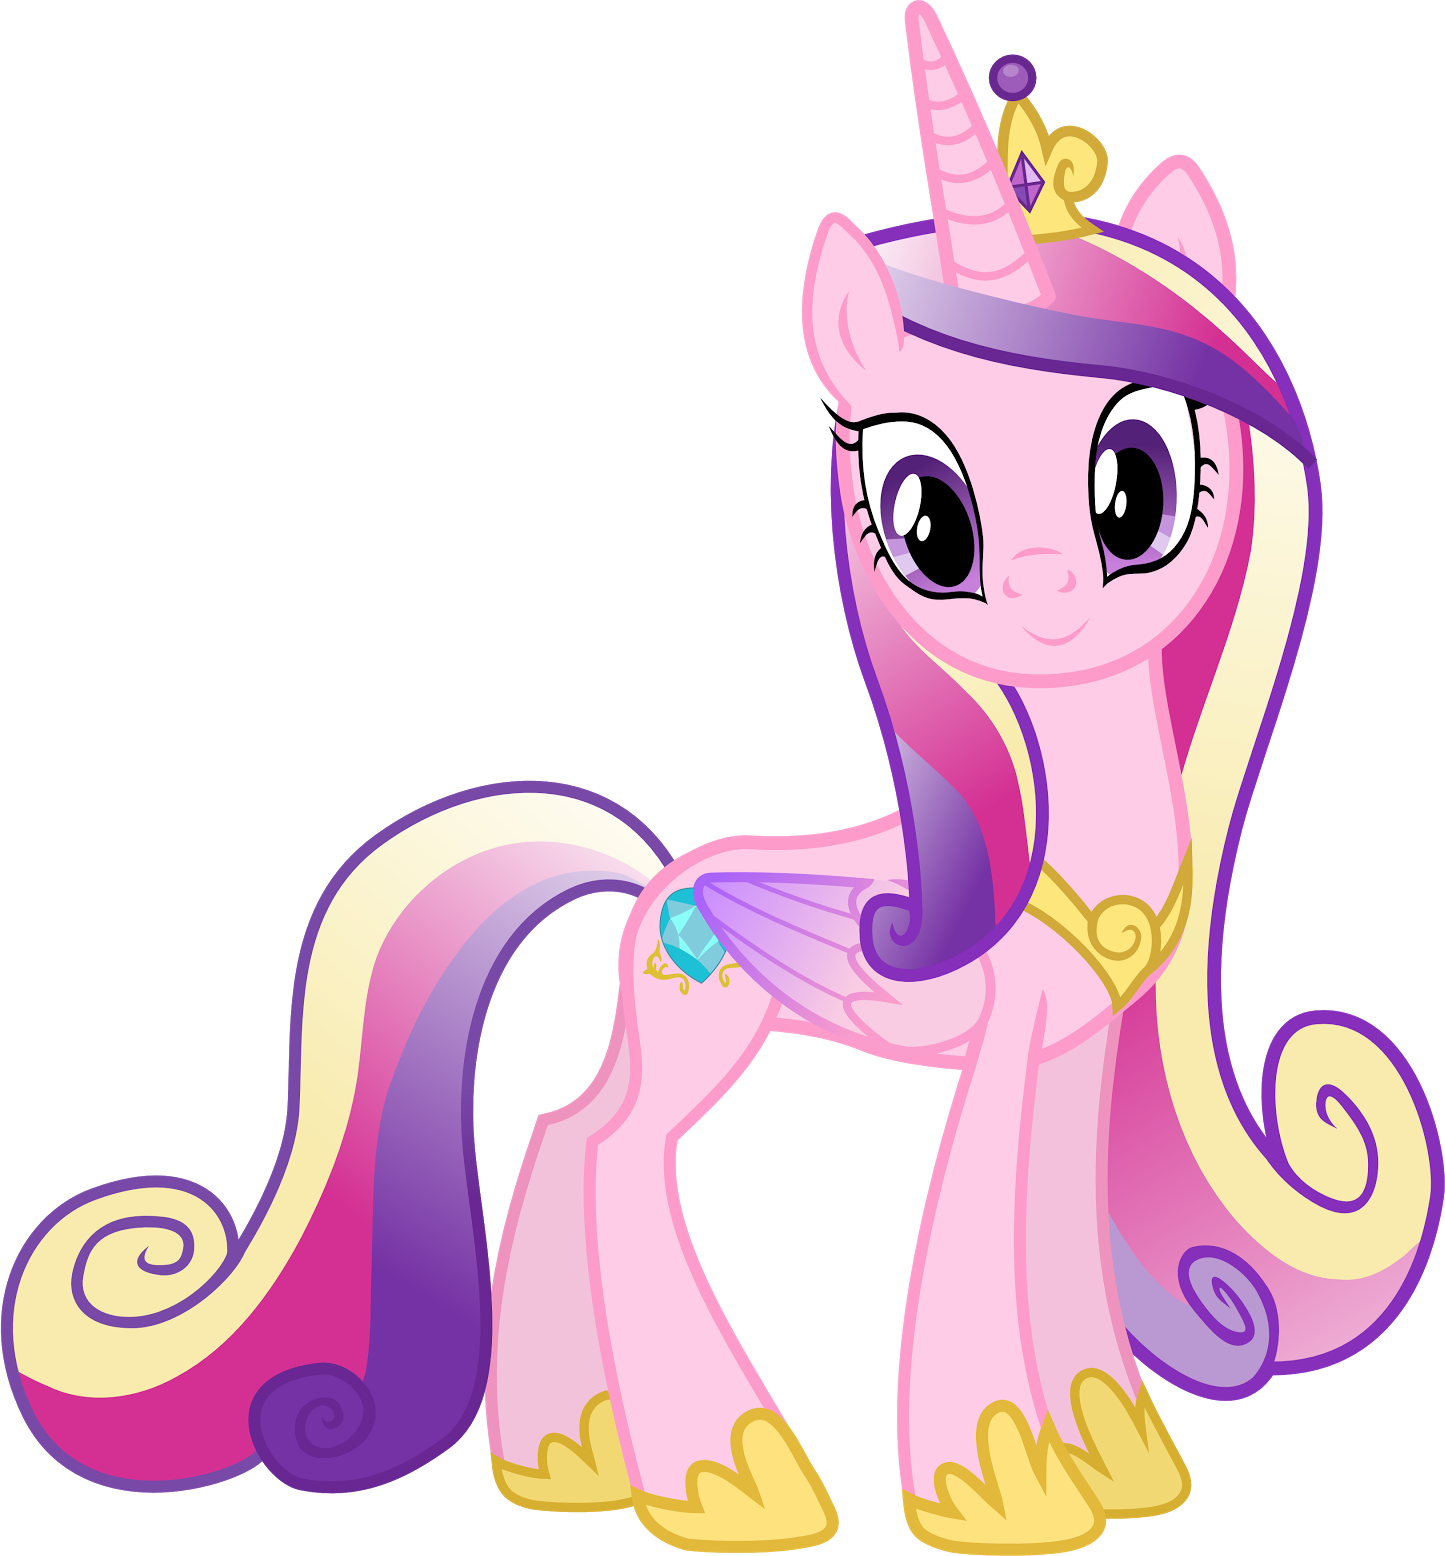 Princess cadance the my little pony gameloft wiki - My little pony cadence ...